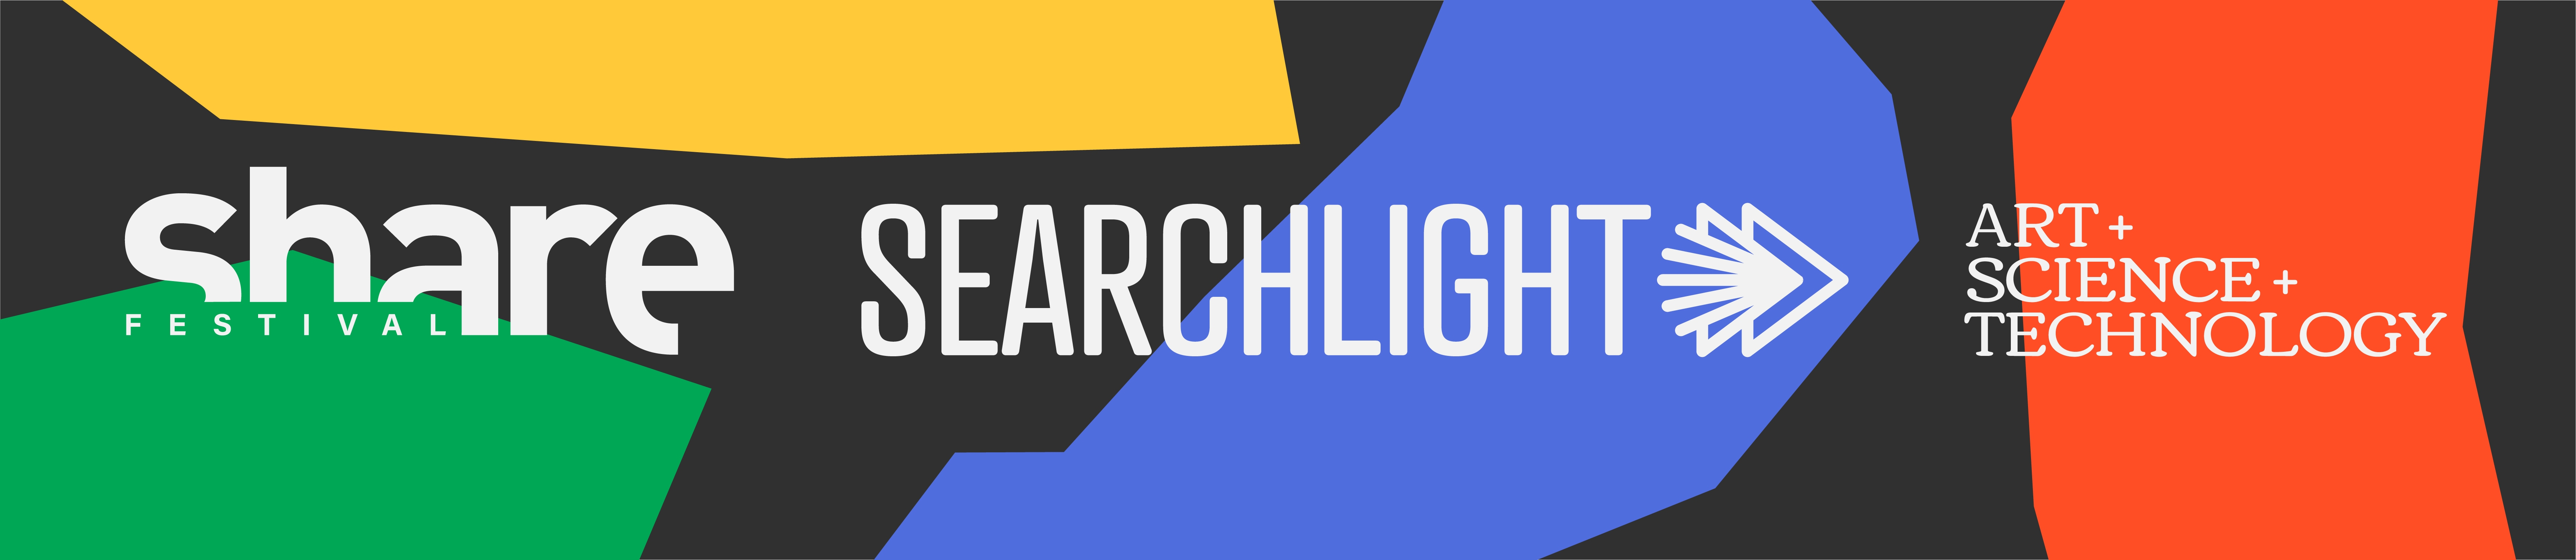 Share Prize XVI - Searchlight